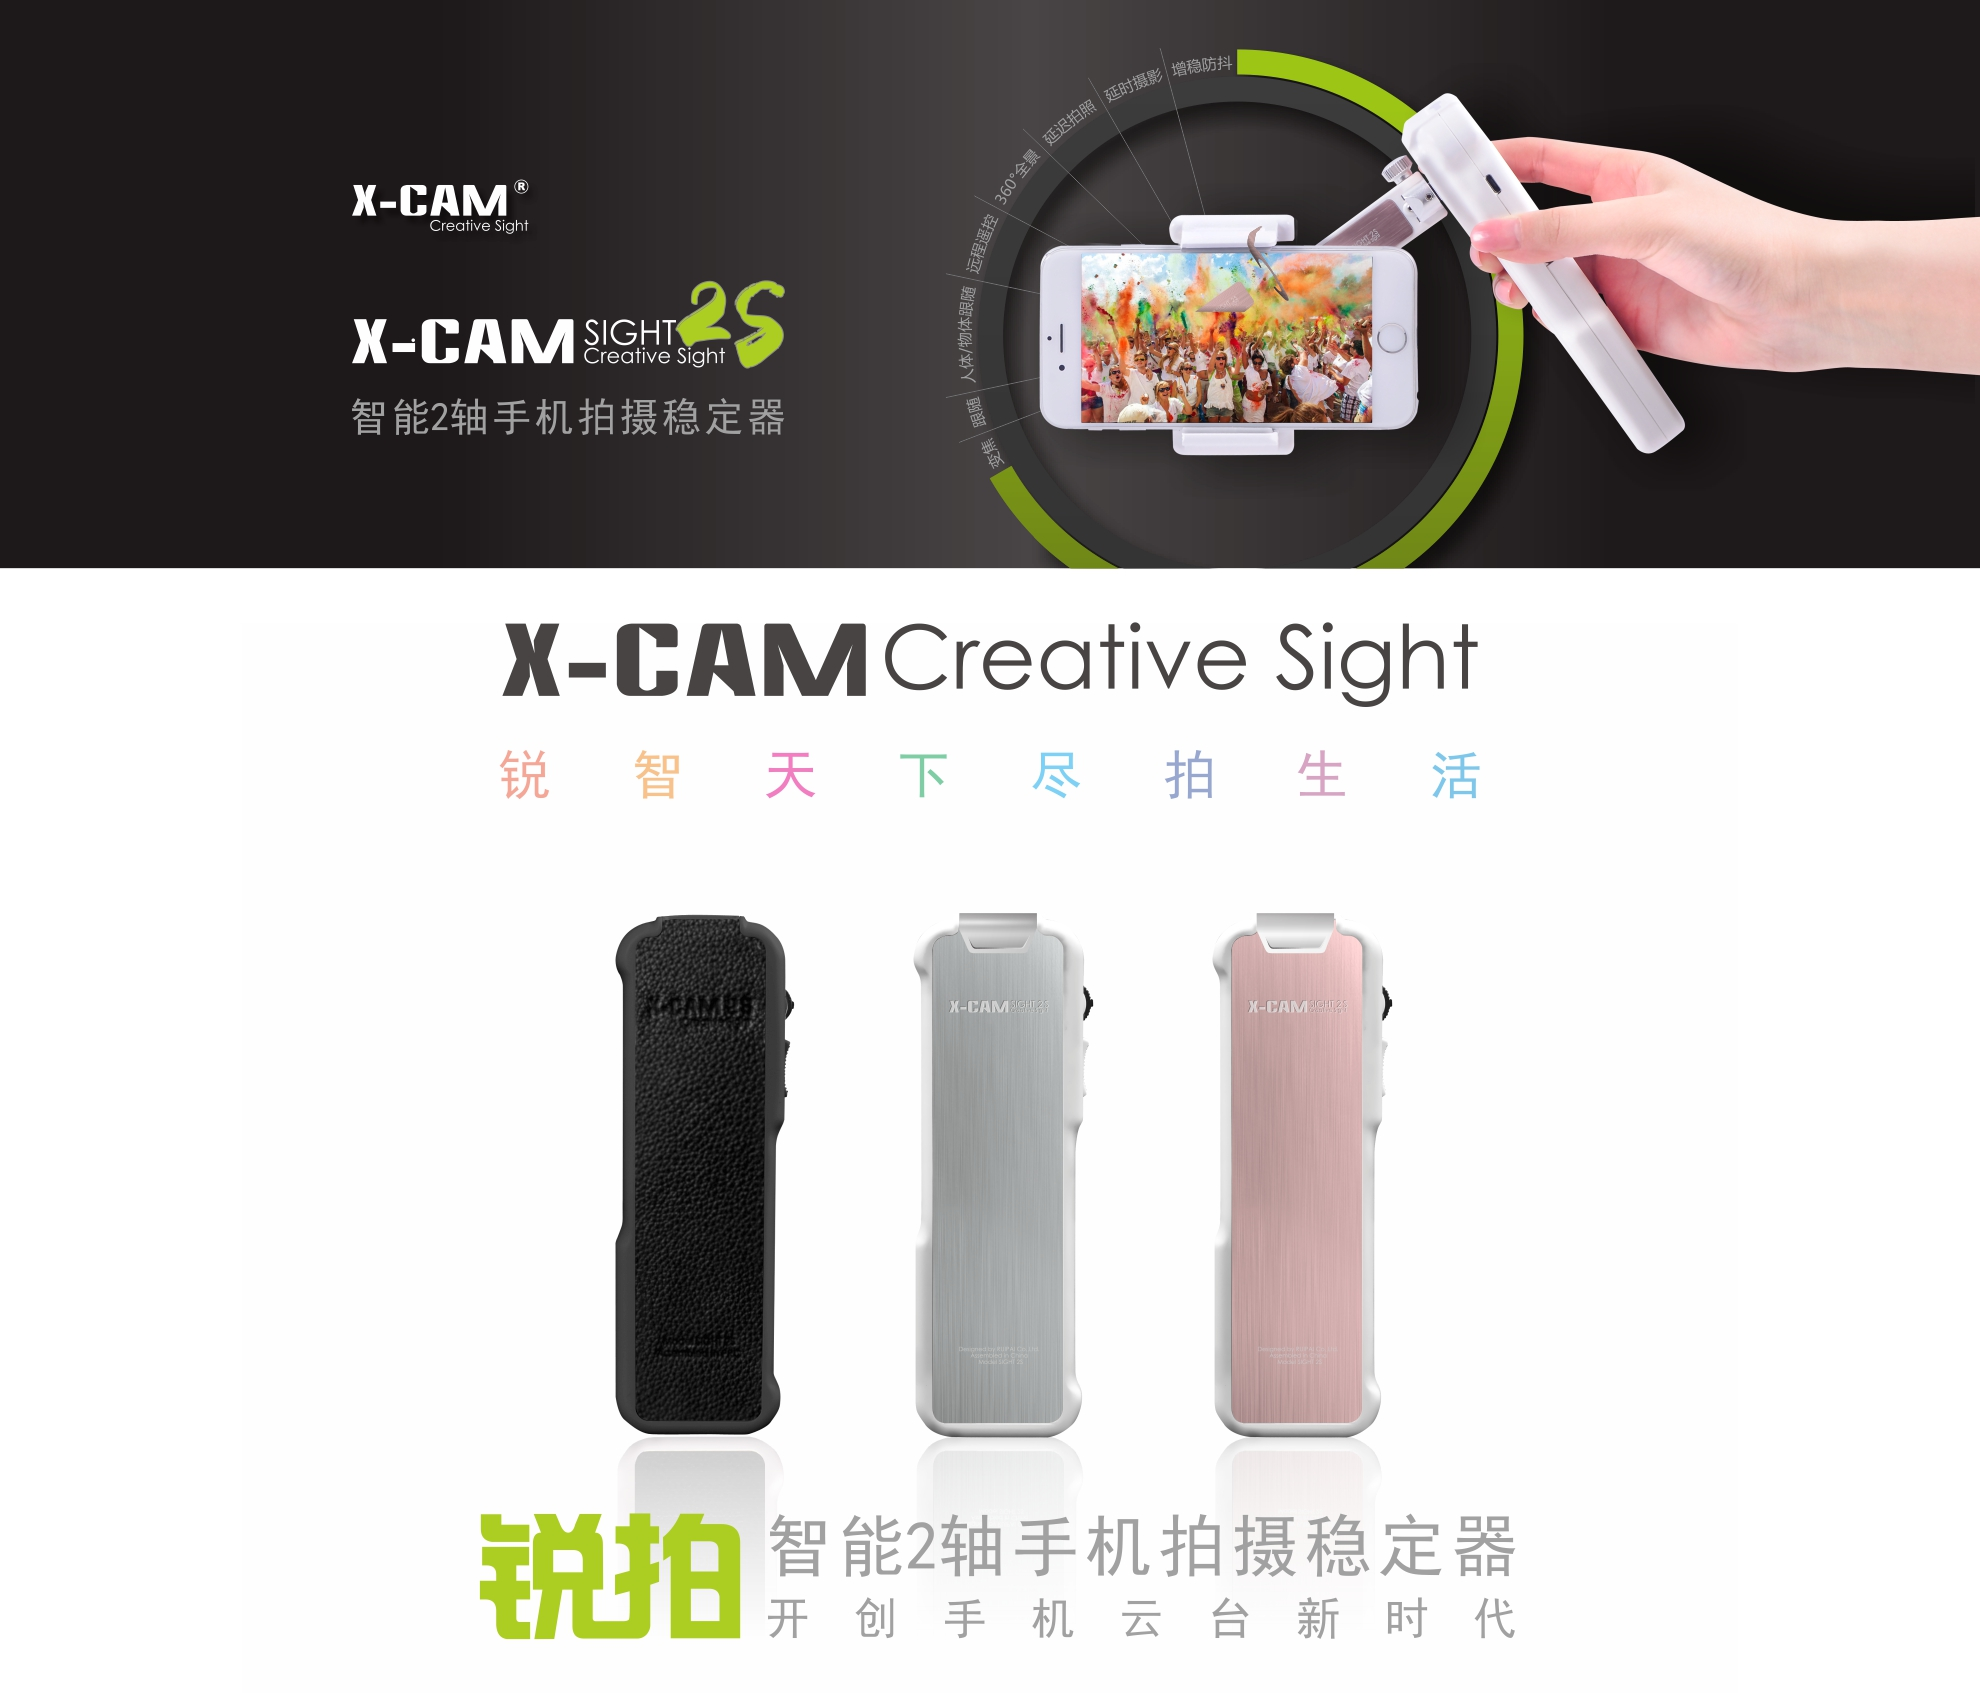 X-Cam SIGHT 2S